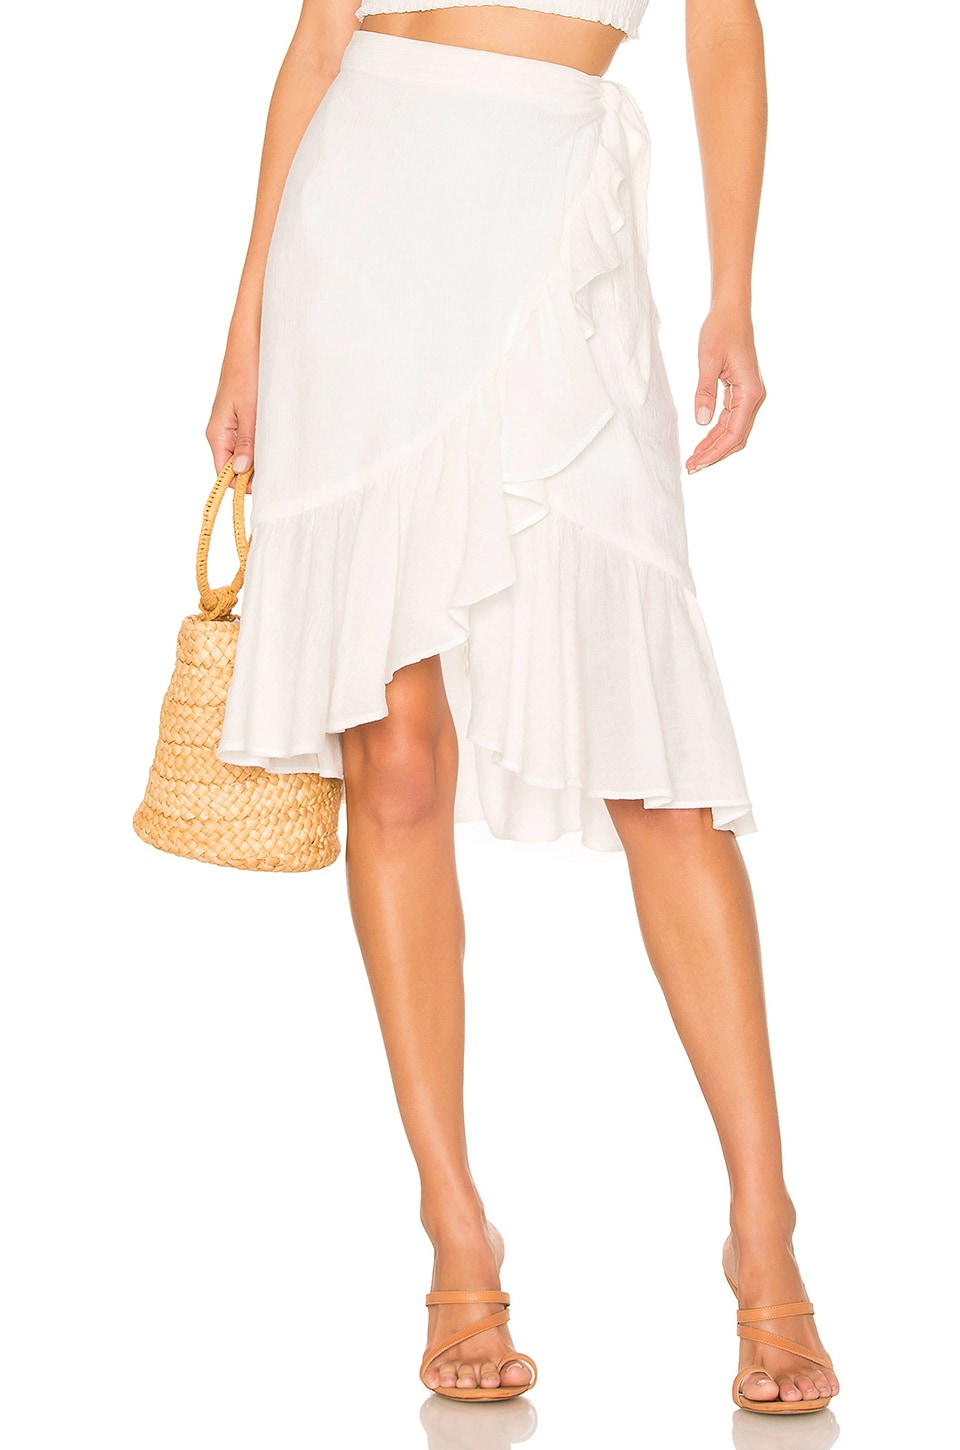 MAJORELLE Darcy Skirt in White